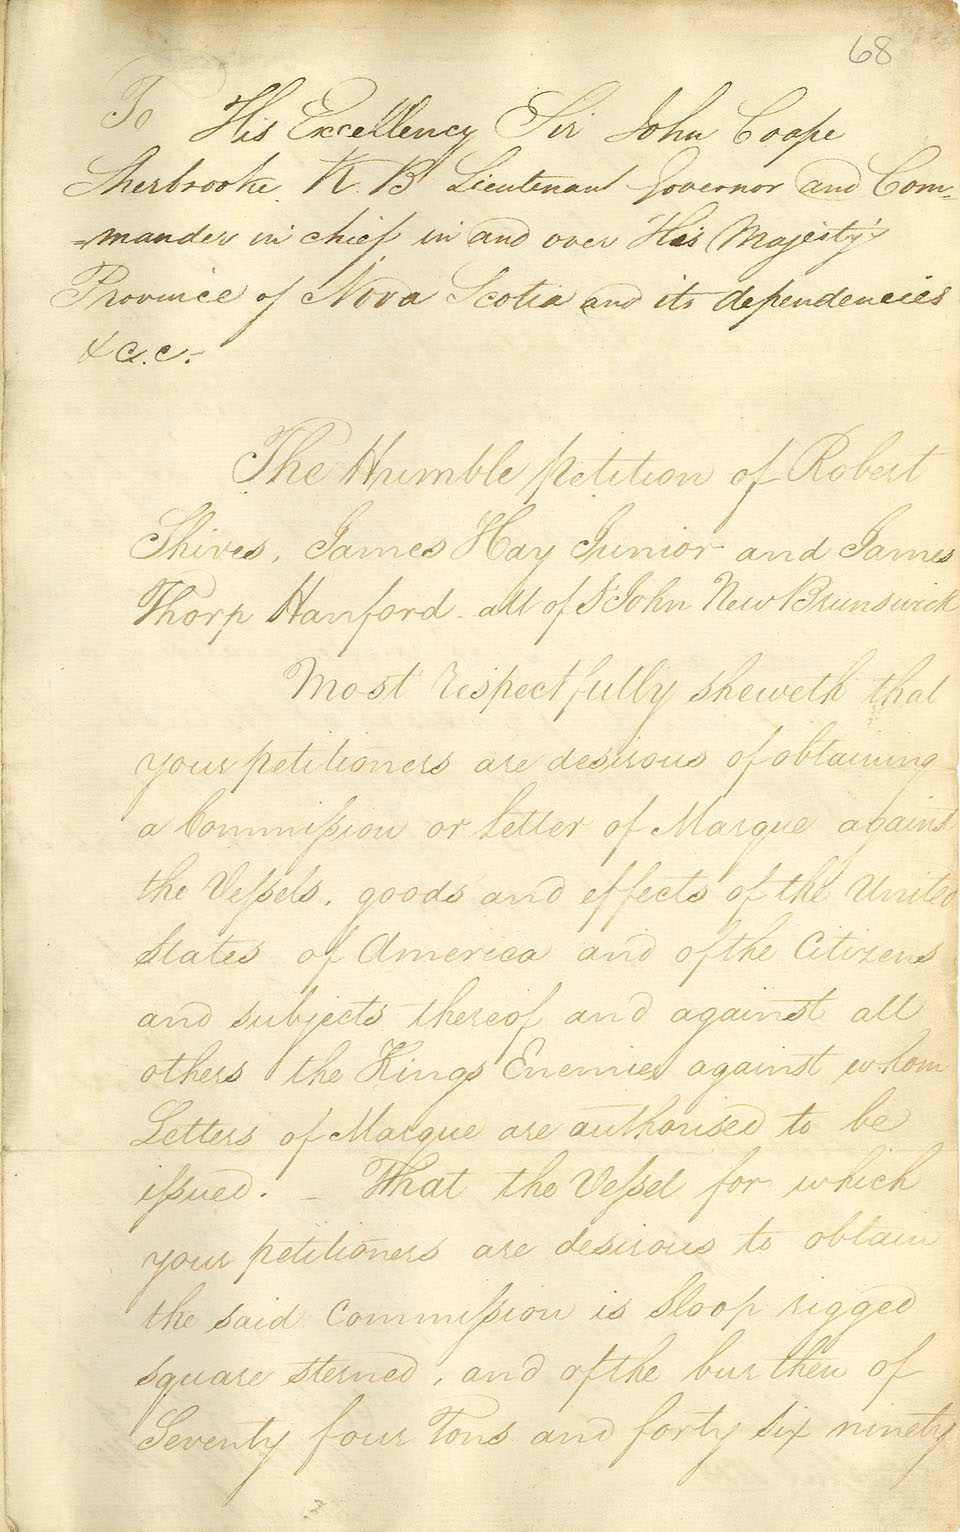 Petition of owners of the sloop <i>Dart</i> for a letter of marque